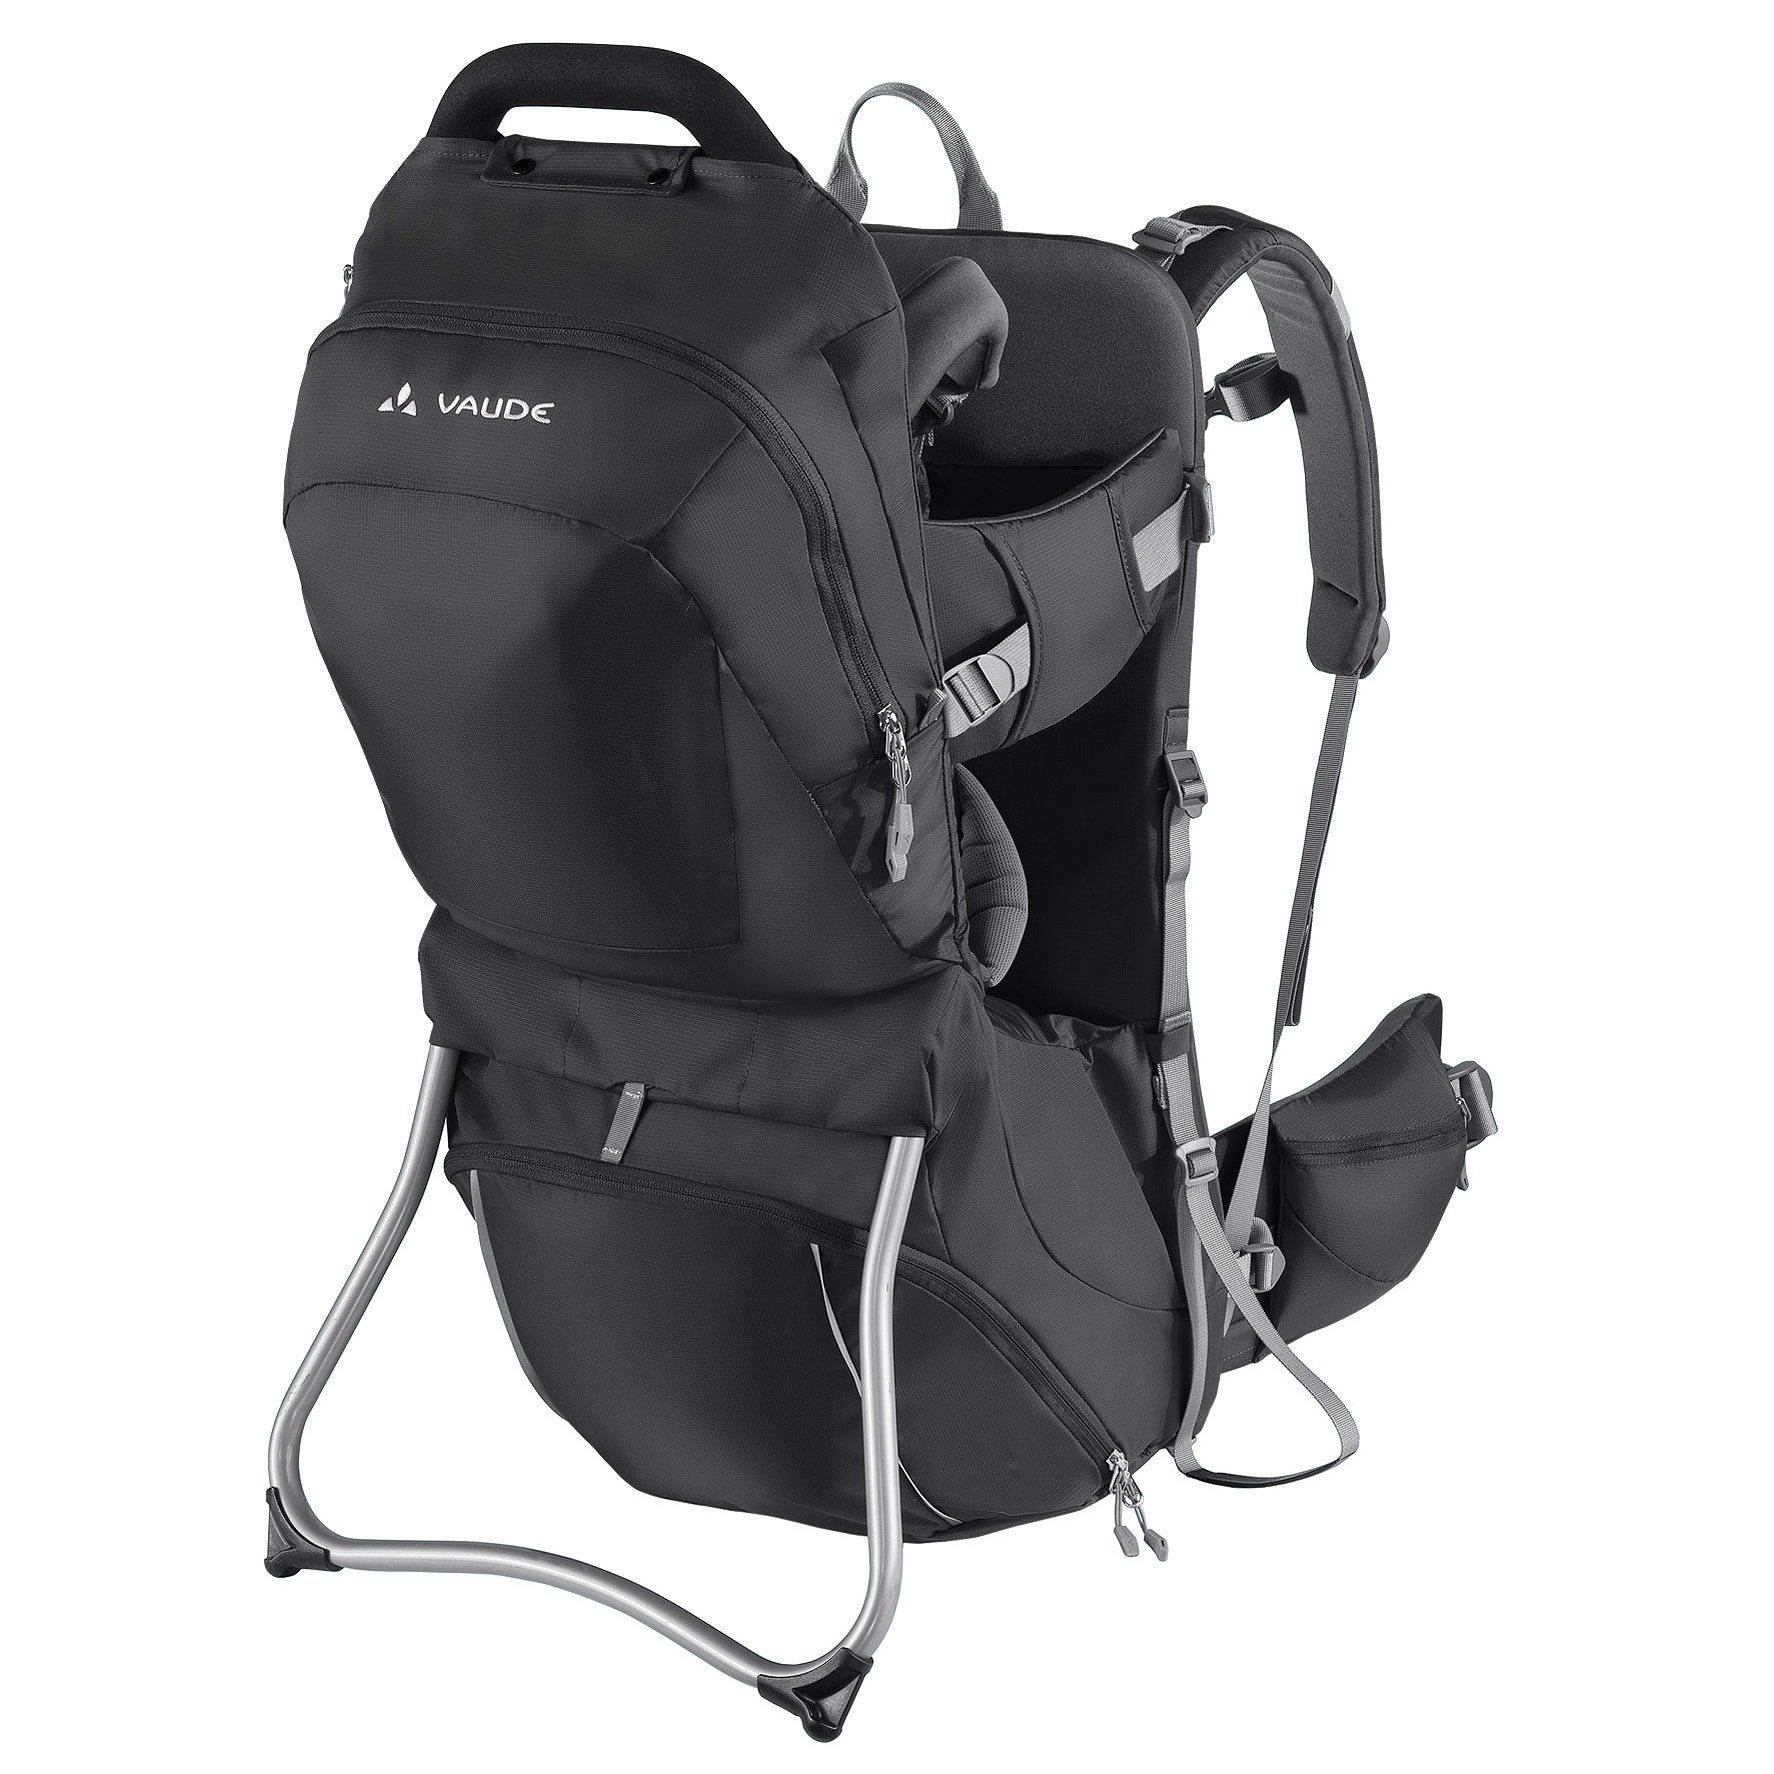 VAUDE Kindertrage »Shuttle Comfort Child Carrier«